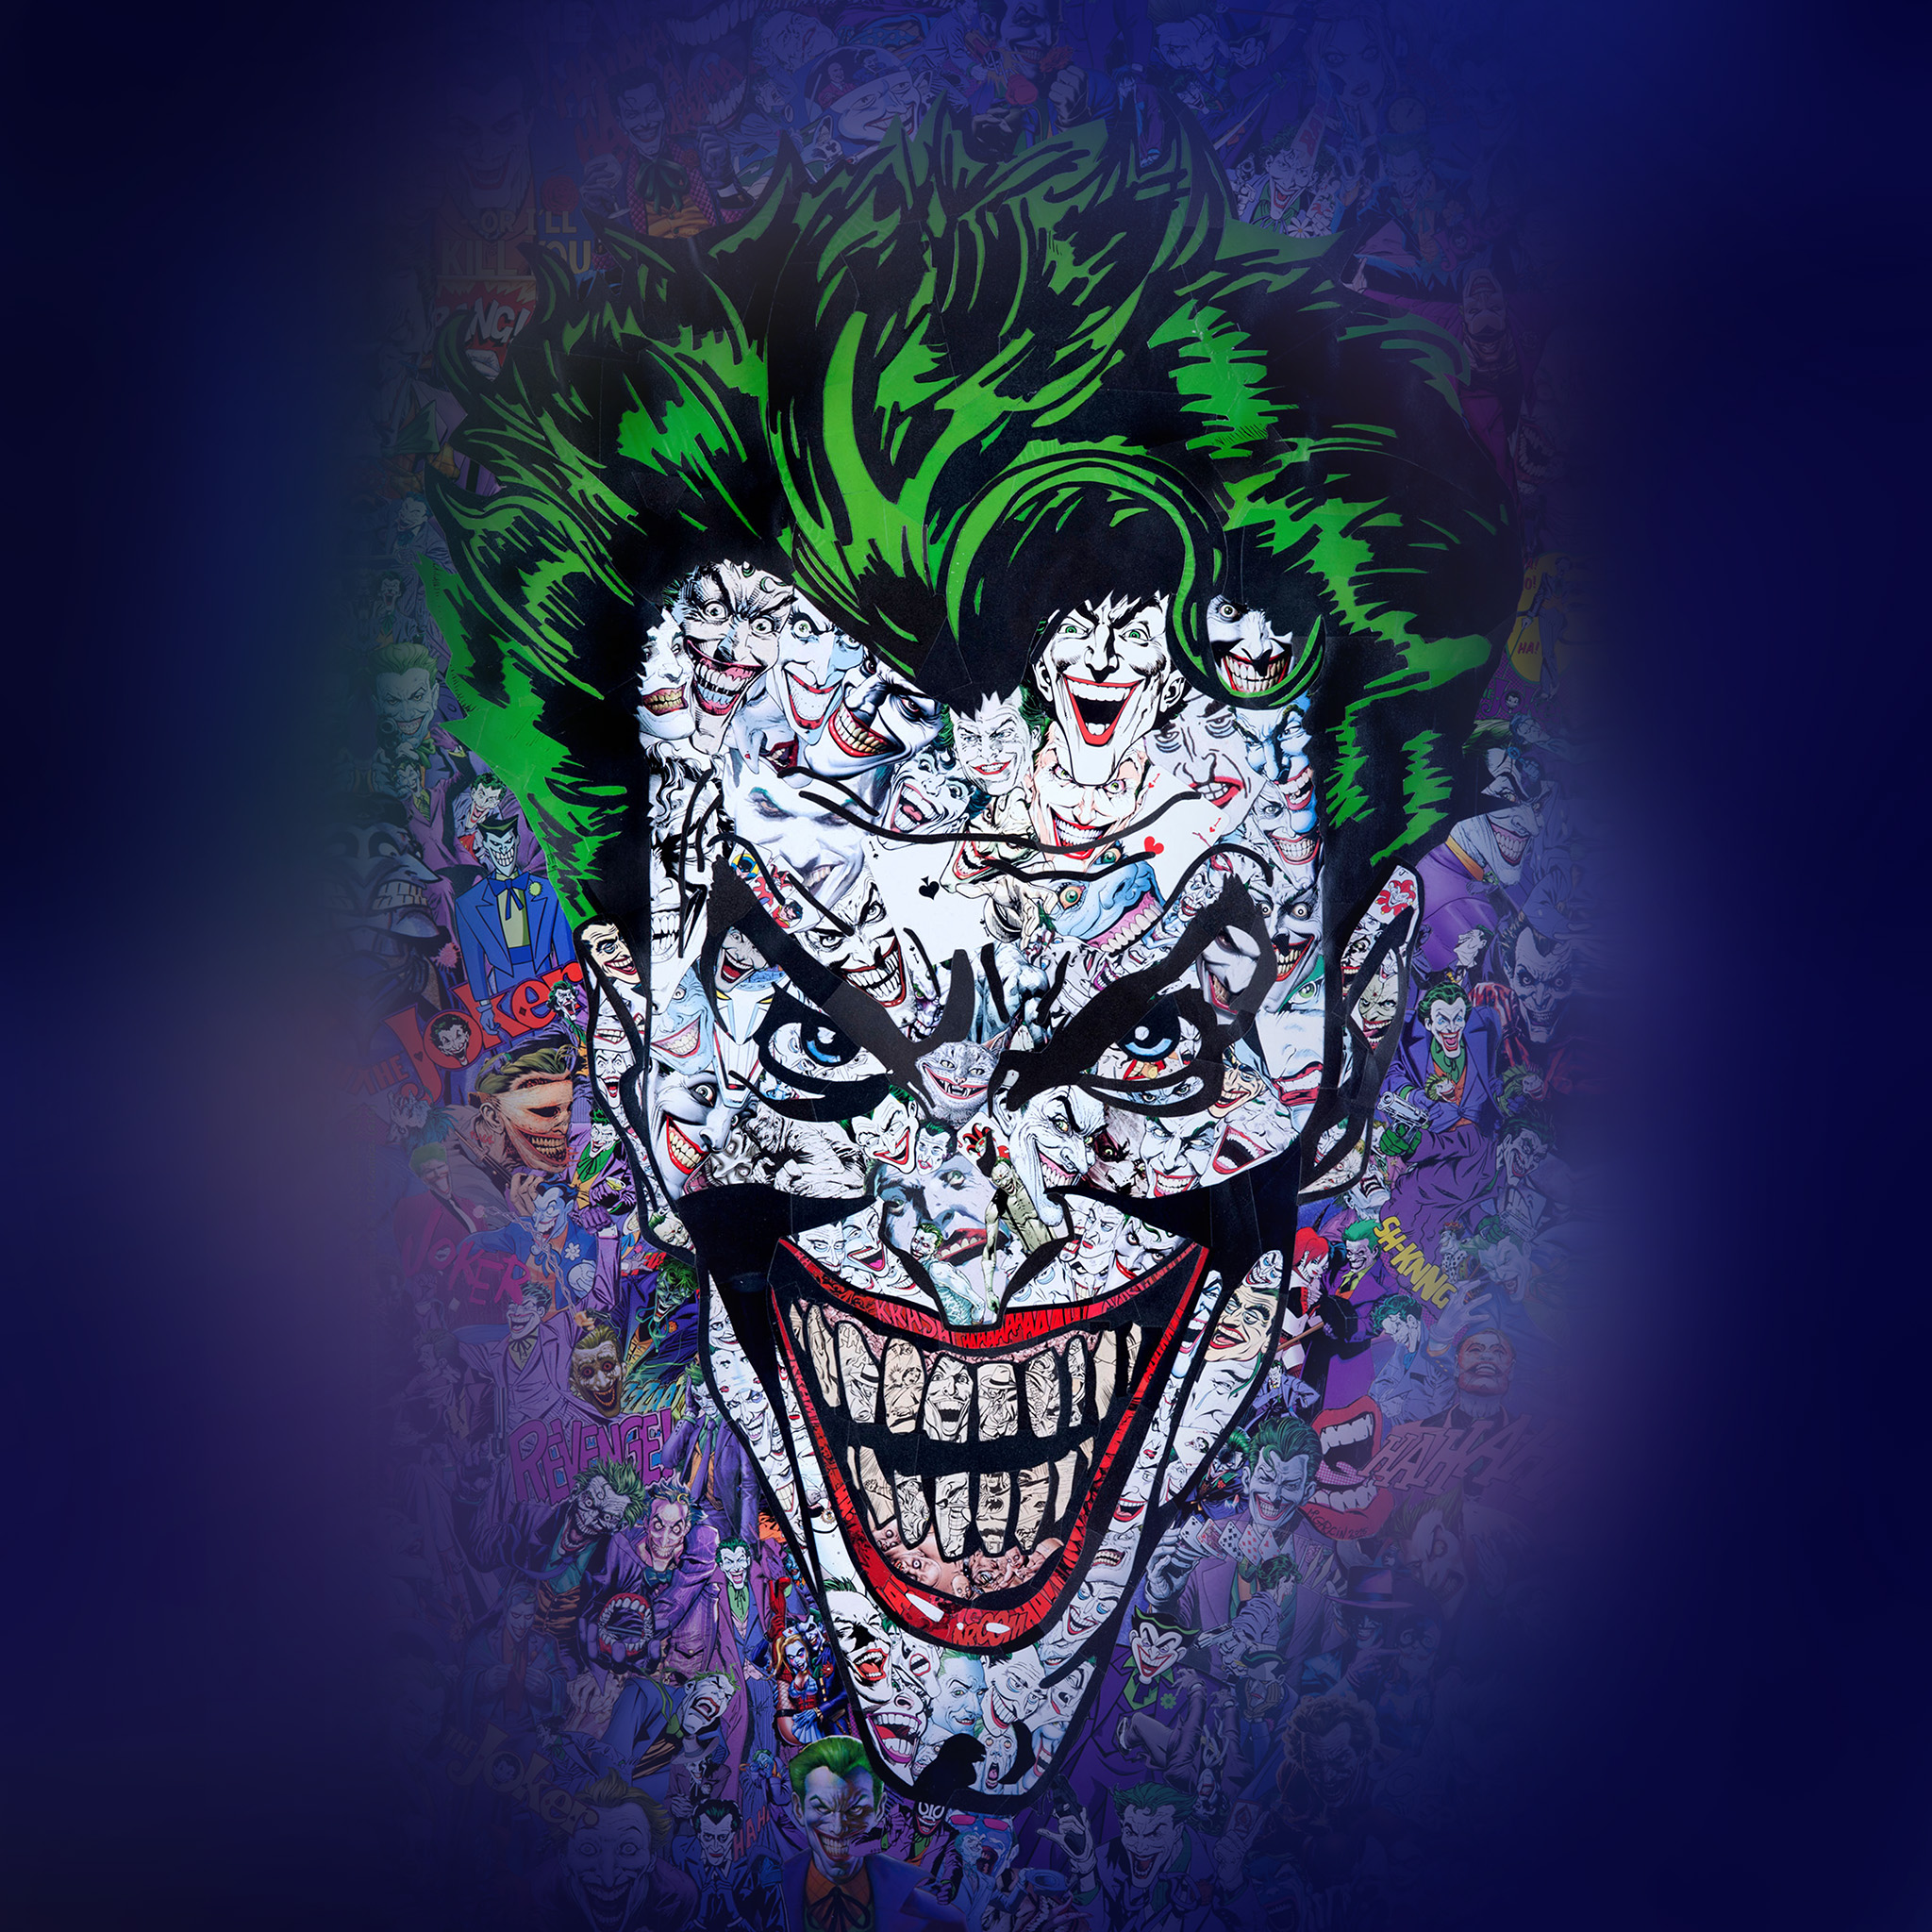 au55-joker-art-face-illustration-art-wallpaper